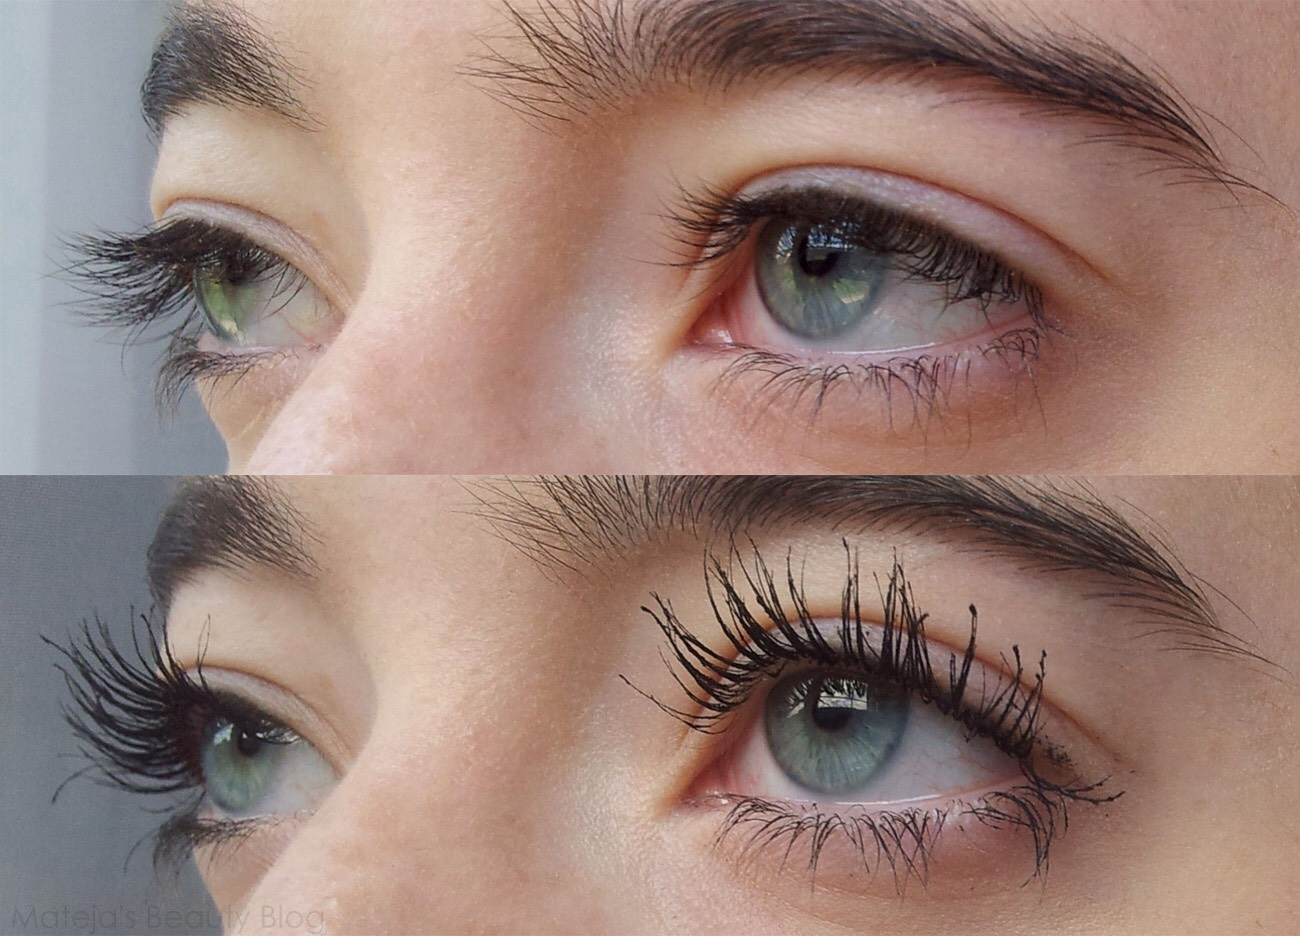 Bad experience with a eyelash curler? No worries! Instead of using a eyelash curler, buy a curling mascara! It does the trick!